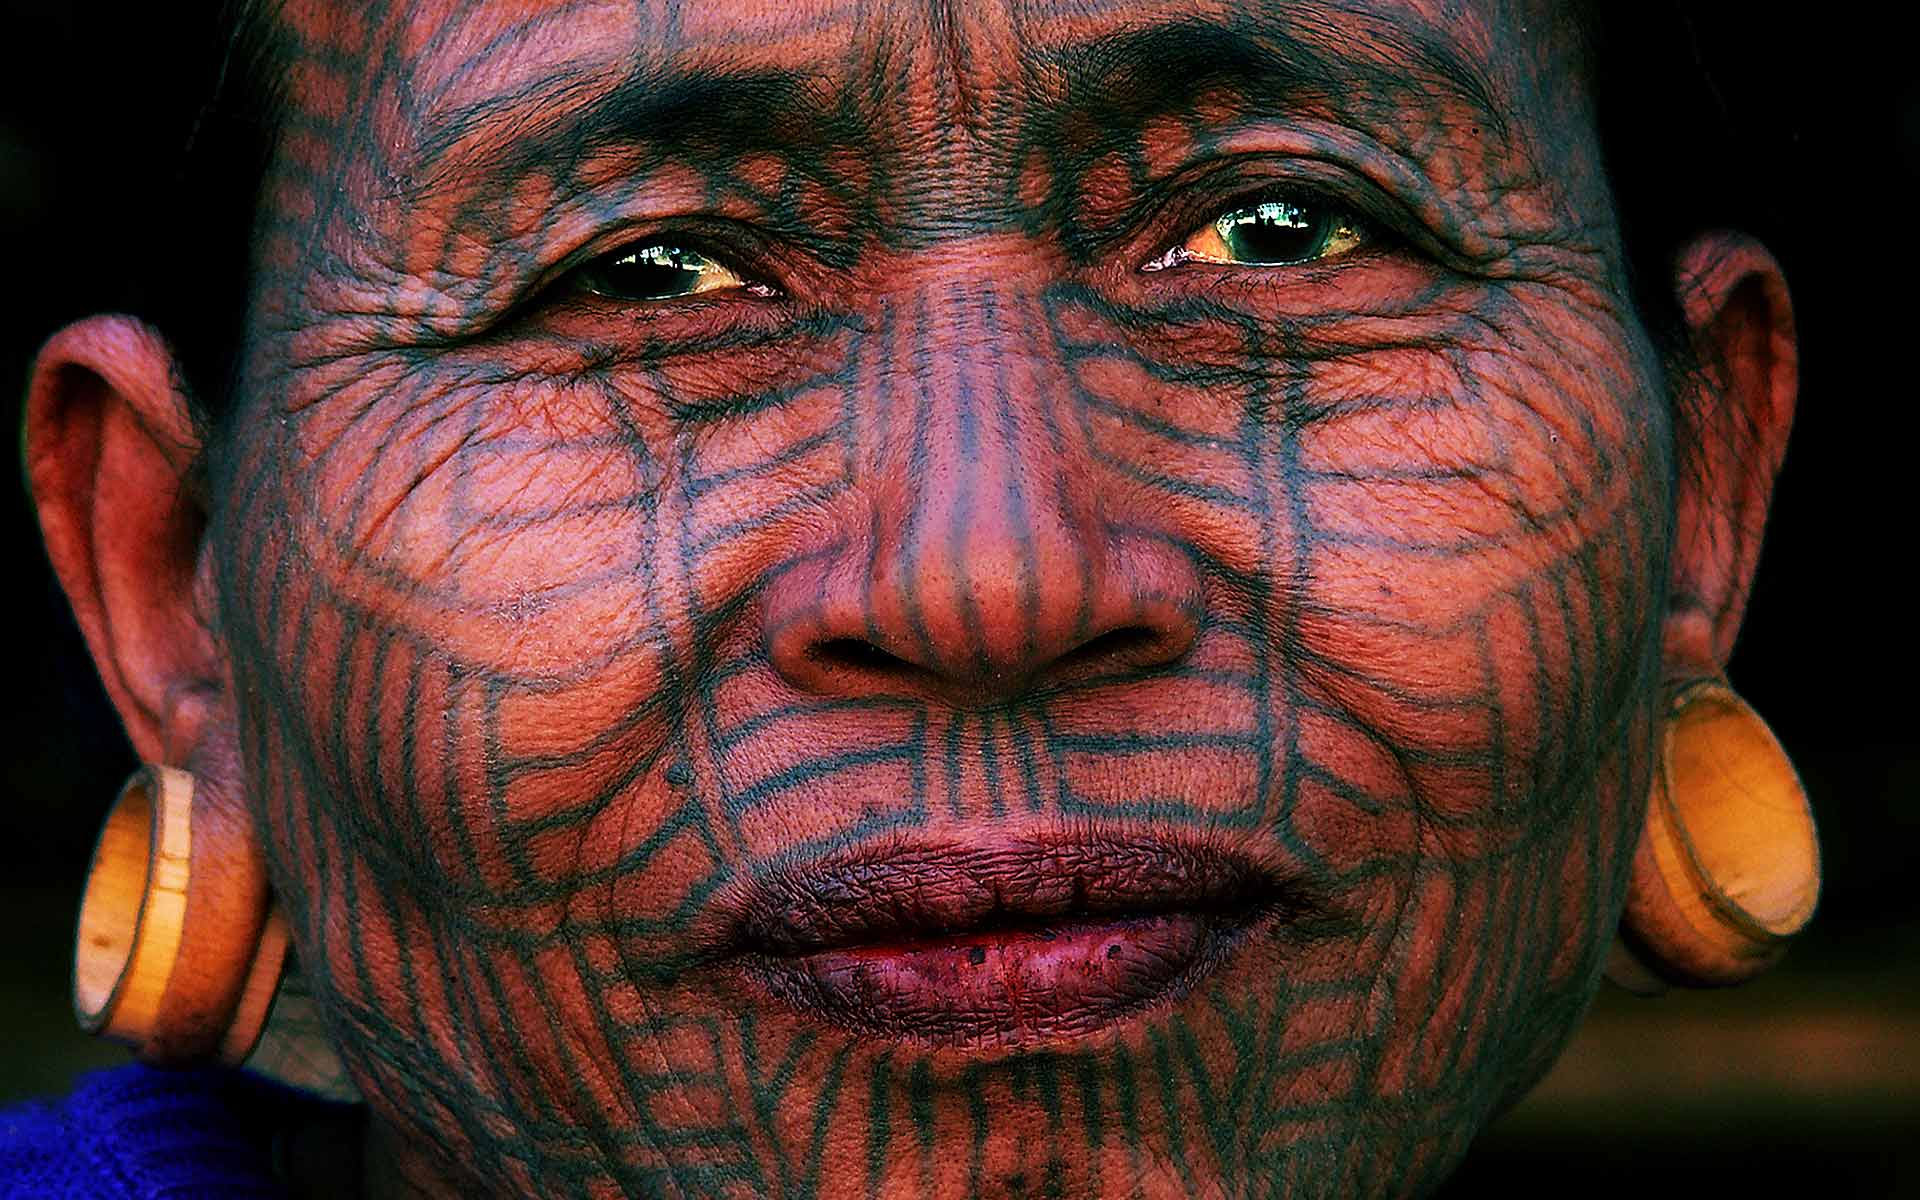 Norbert Klora Photo Woman with Spider Tattoo, Myanmar